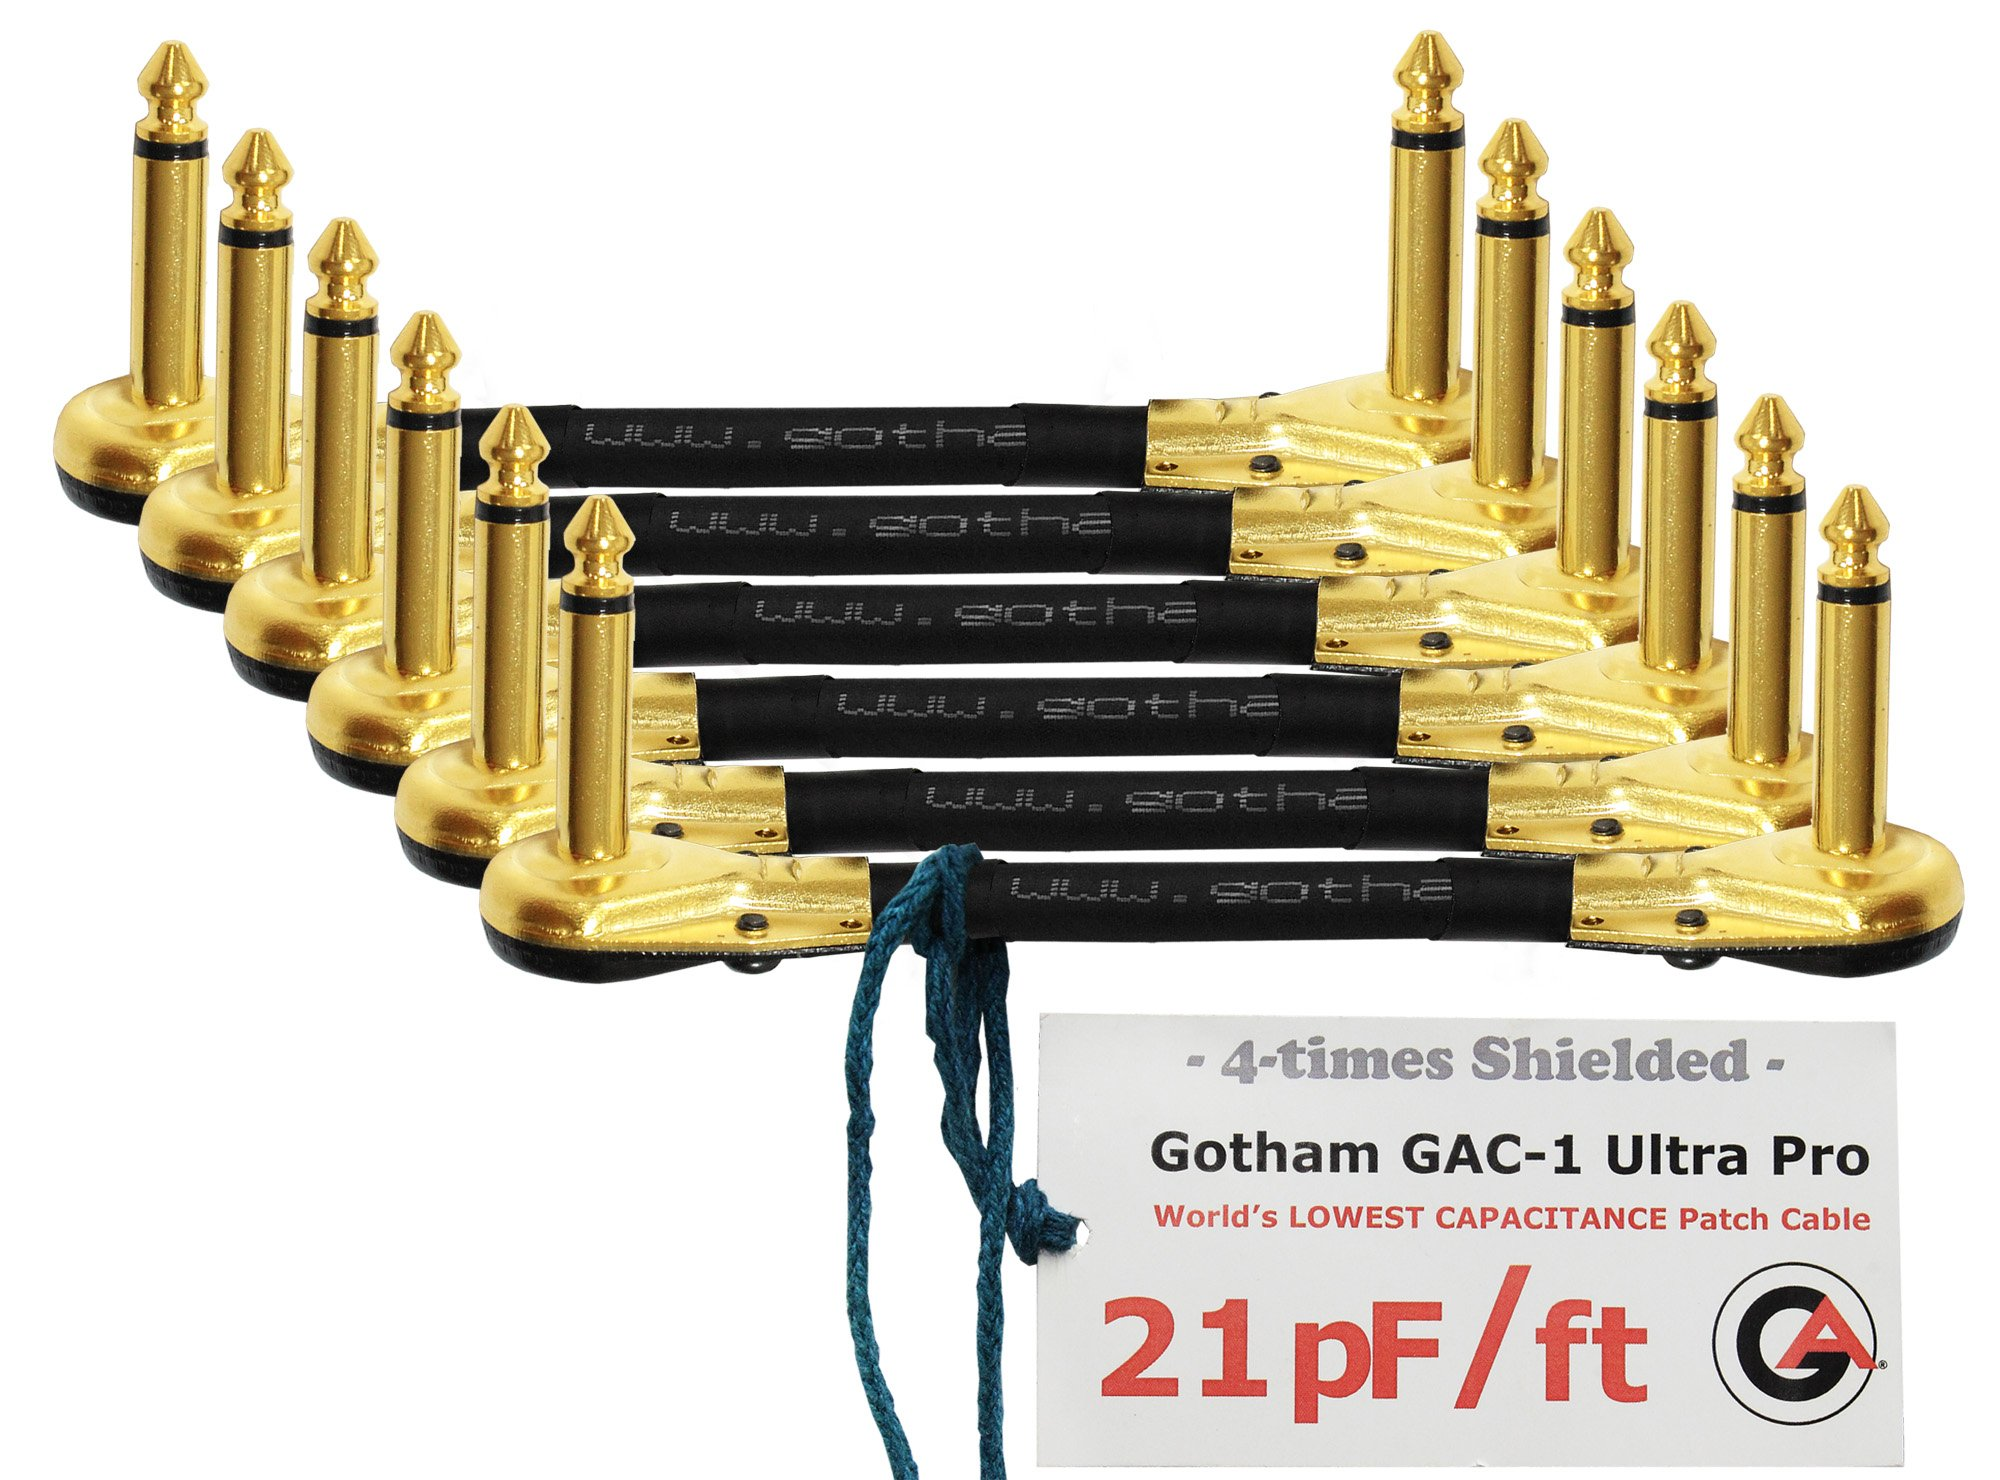 6 Units - 4 Inch - Gotham GAC-1 Ultra Pro - Low-Cap (21pF/ft) Guitar Bass Effects Instrument, Patch Cable & Gold (6.35mm) Low-Profile R/A Pancake type Connectors - CUSTOM MADE By WORLDS BEST CABLES